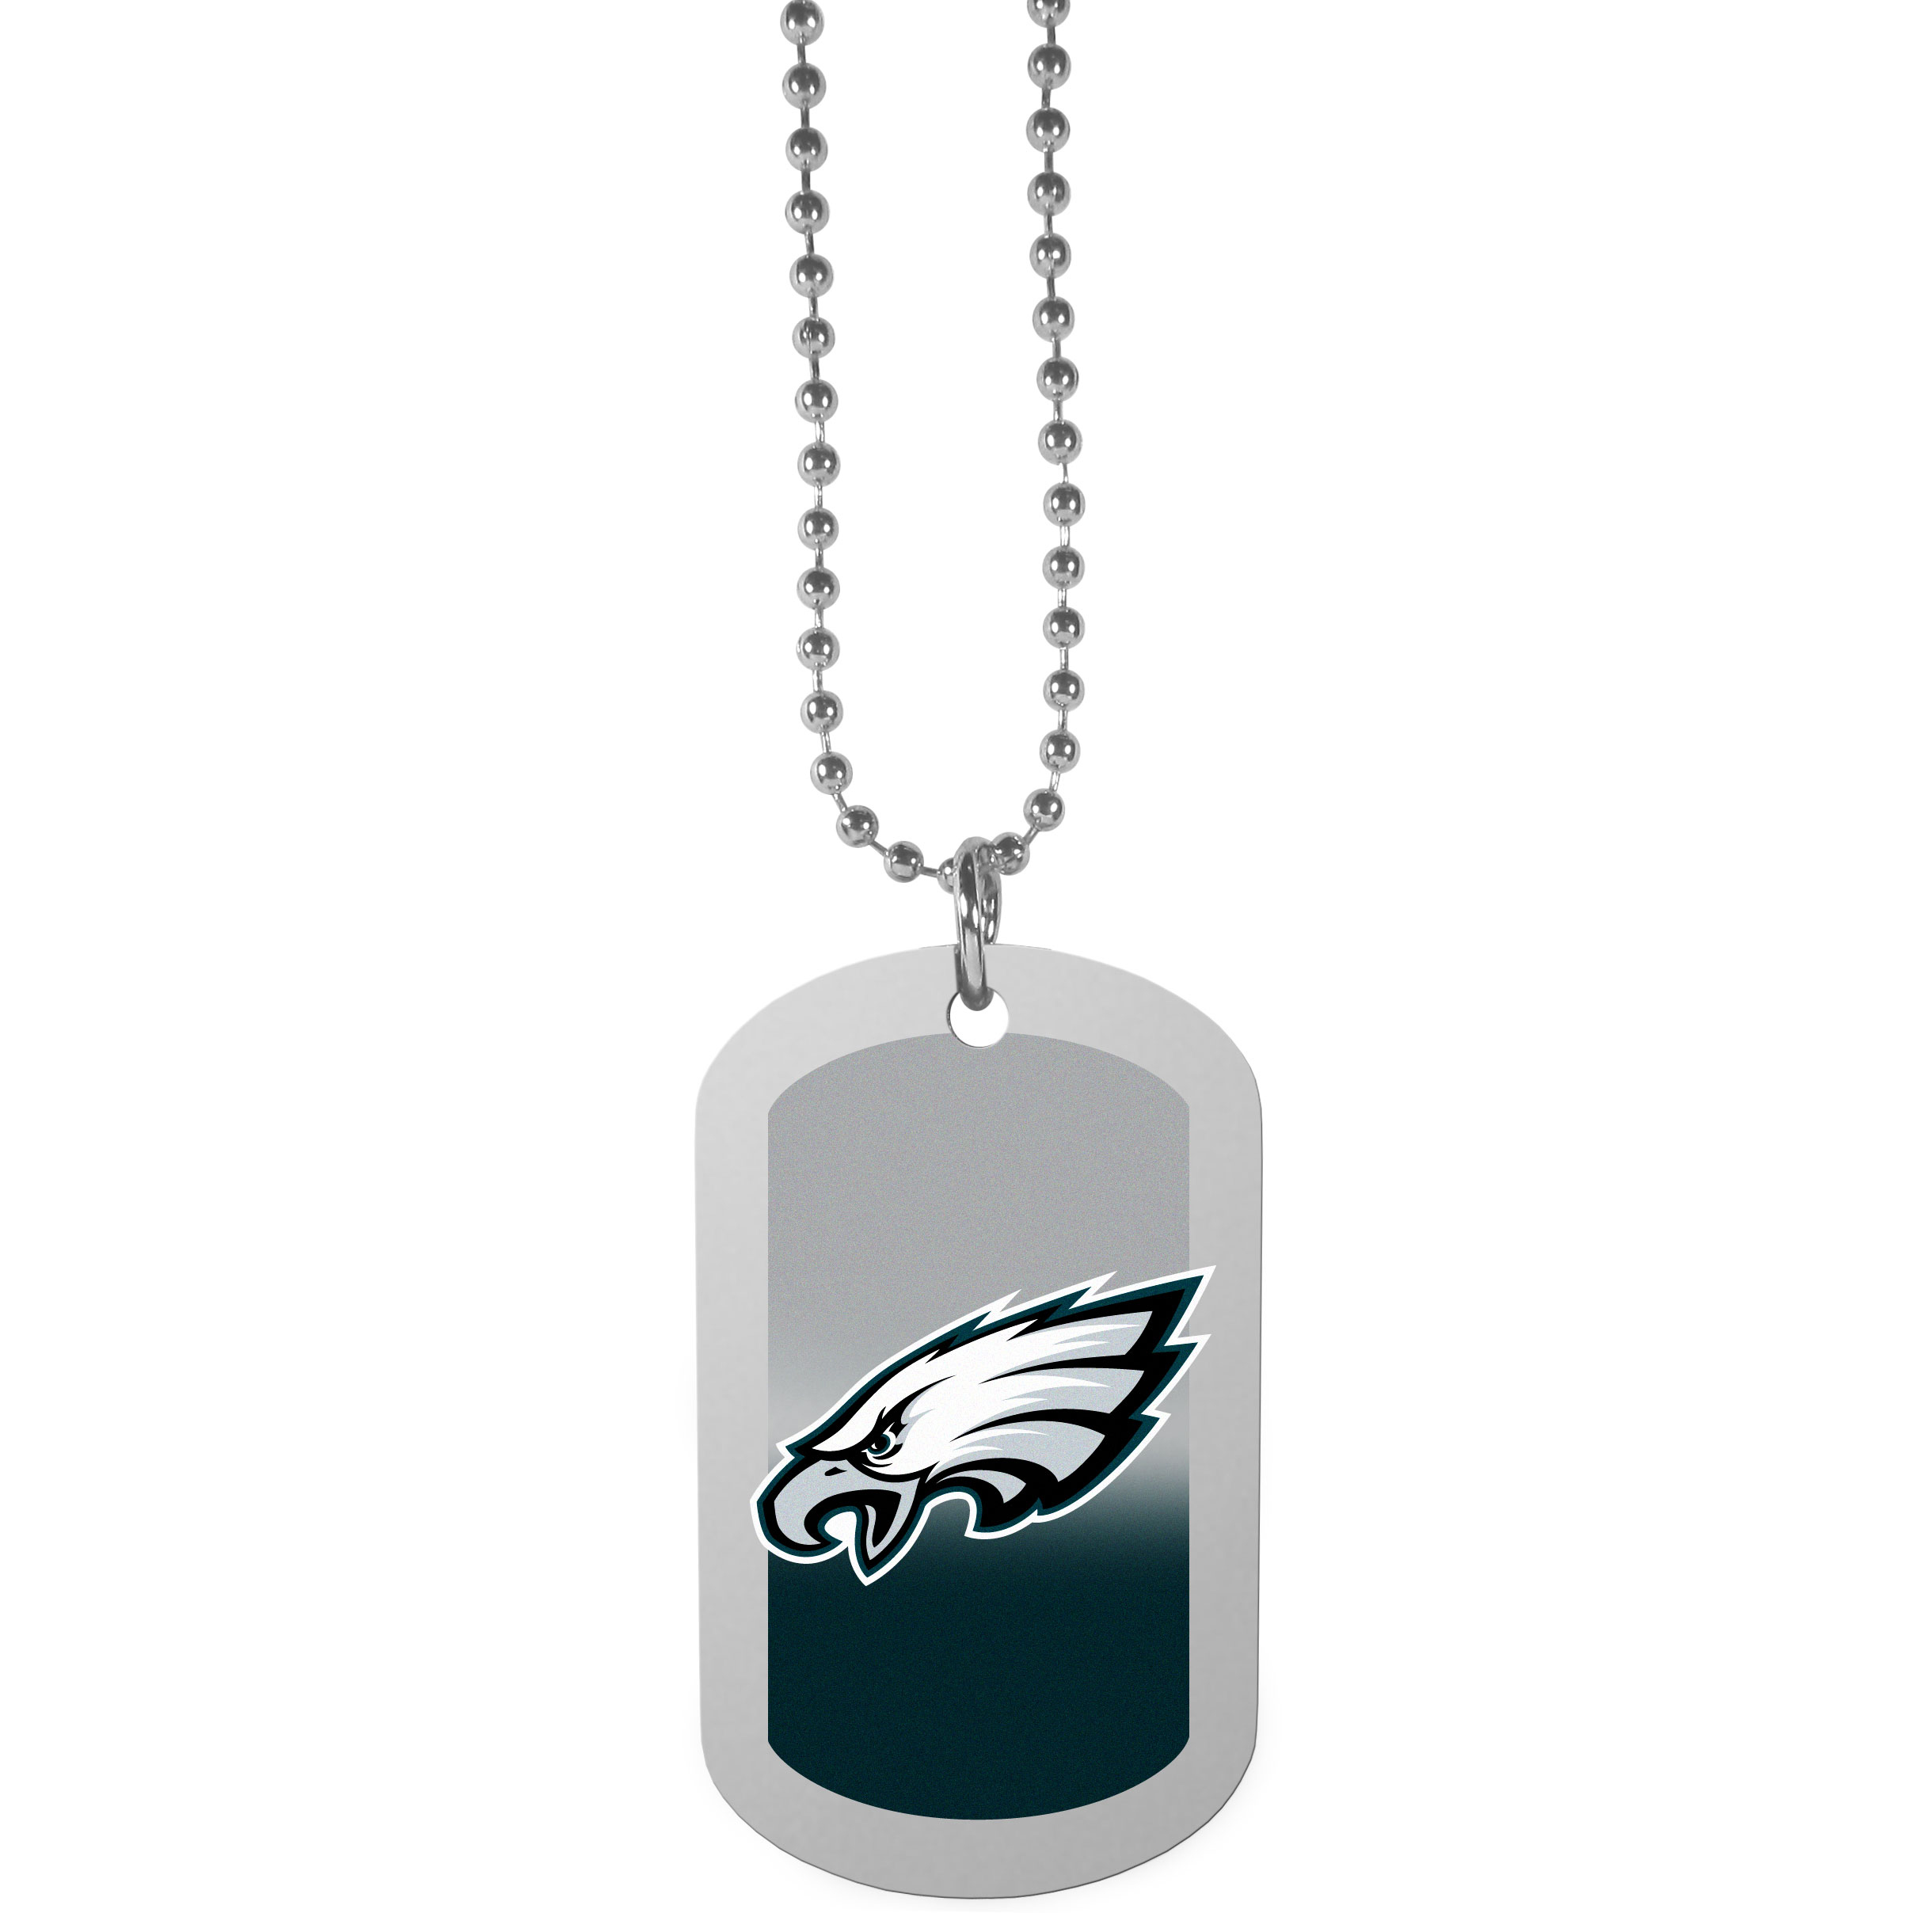 Philadelphia Eagles Team Tag Necklace - Dog tag necklaces are a fashion statement that is here to stay. The sporty version of the classic tag features a gradient print in team colors featuring a full color team logo over a high polish tag to create a bold and sporty look. The tag comes on a 26 inch ball chain with a ball and joint clasp. Any Philadelphia Eagles would be proud to wear this attractive fashion accessory.